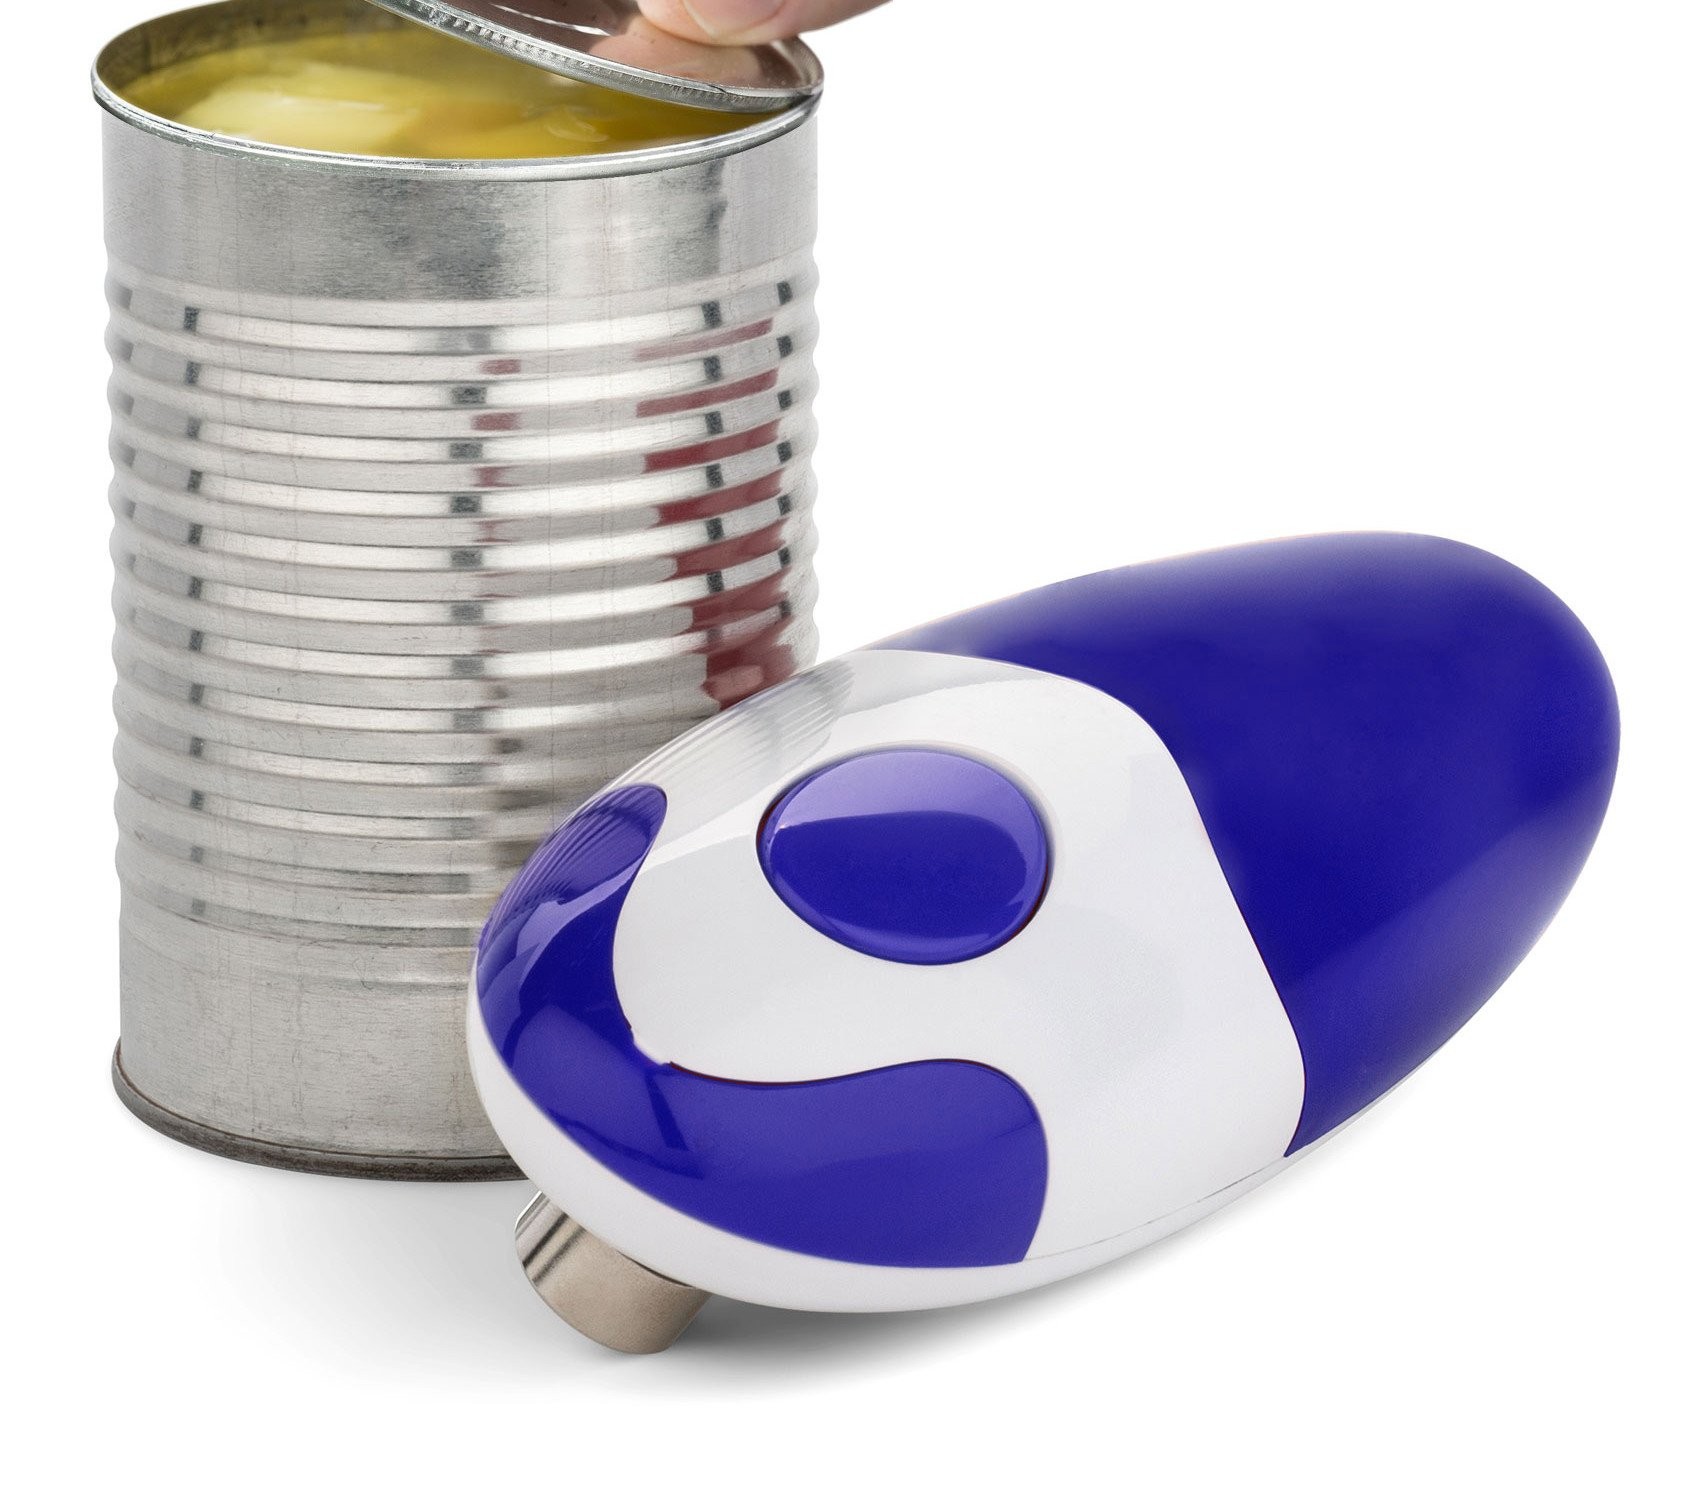 Bartelli Soft Edge Automatic Electric Can Opener - Blue by Bartelli (Image #5)